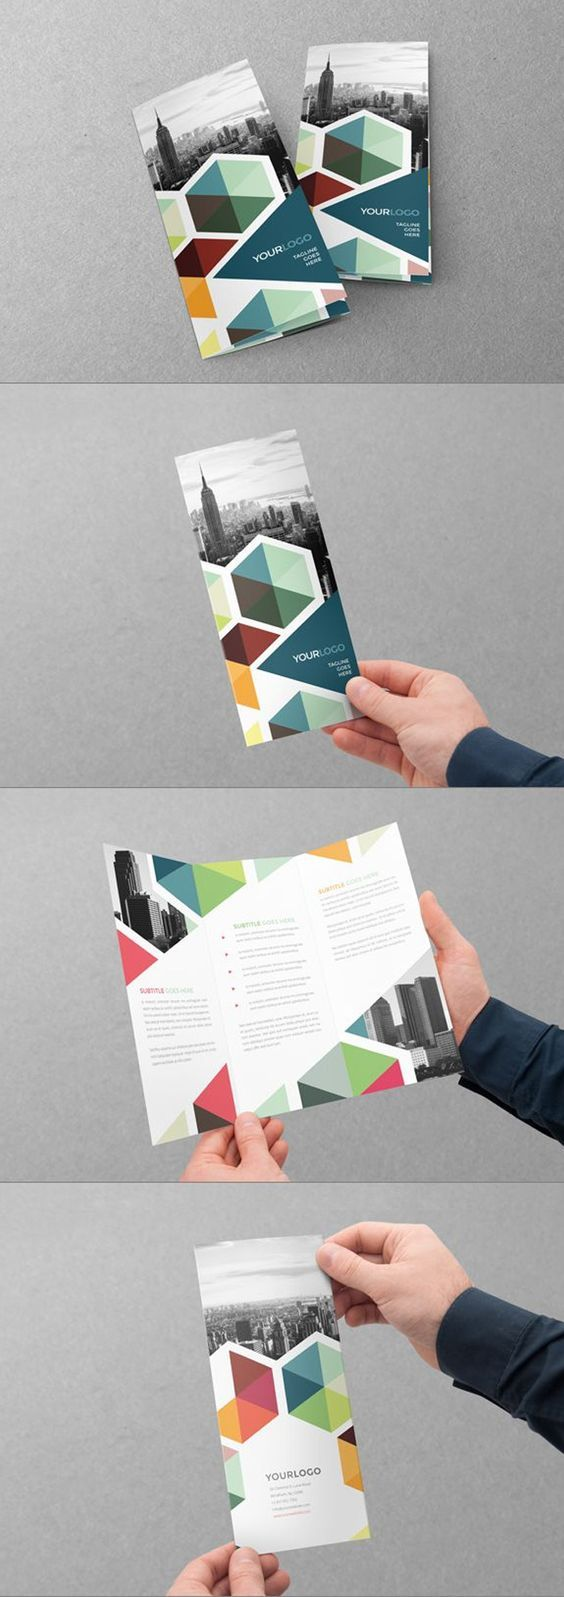 62 best Construction Business Card Templates images on Pinterest ...